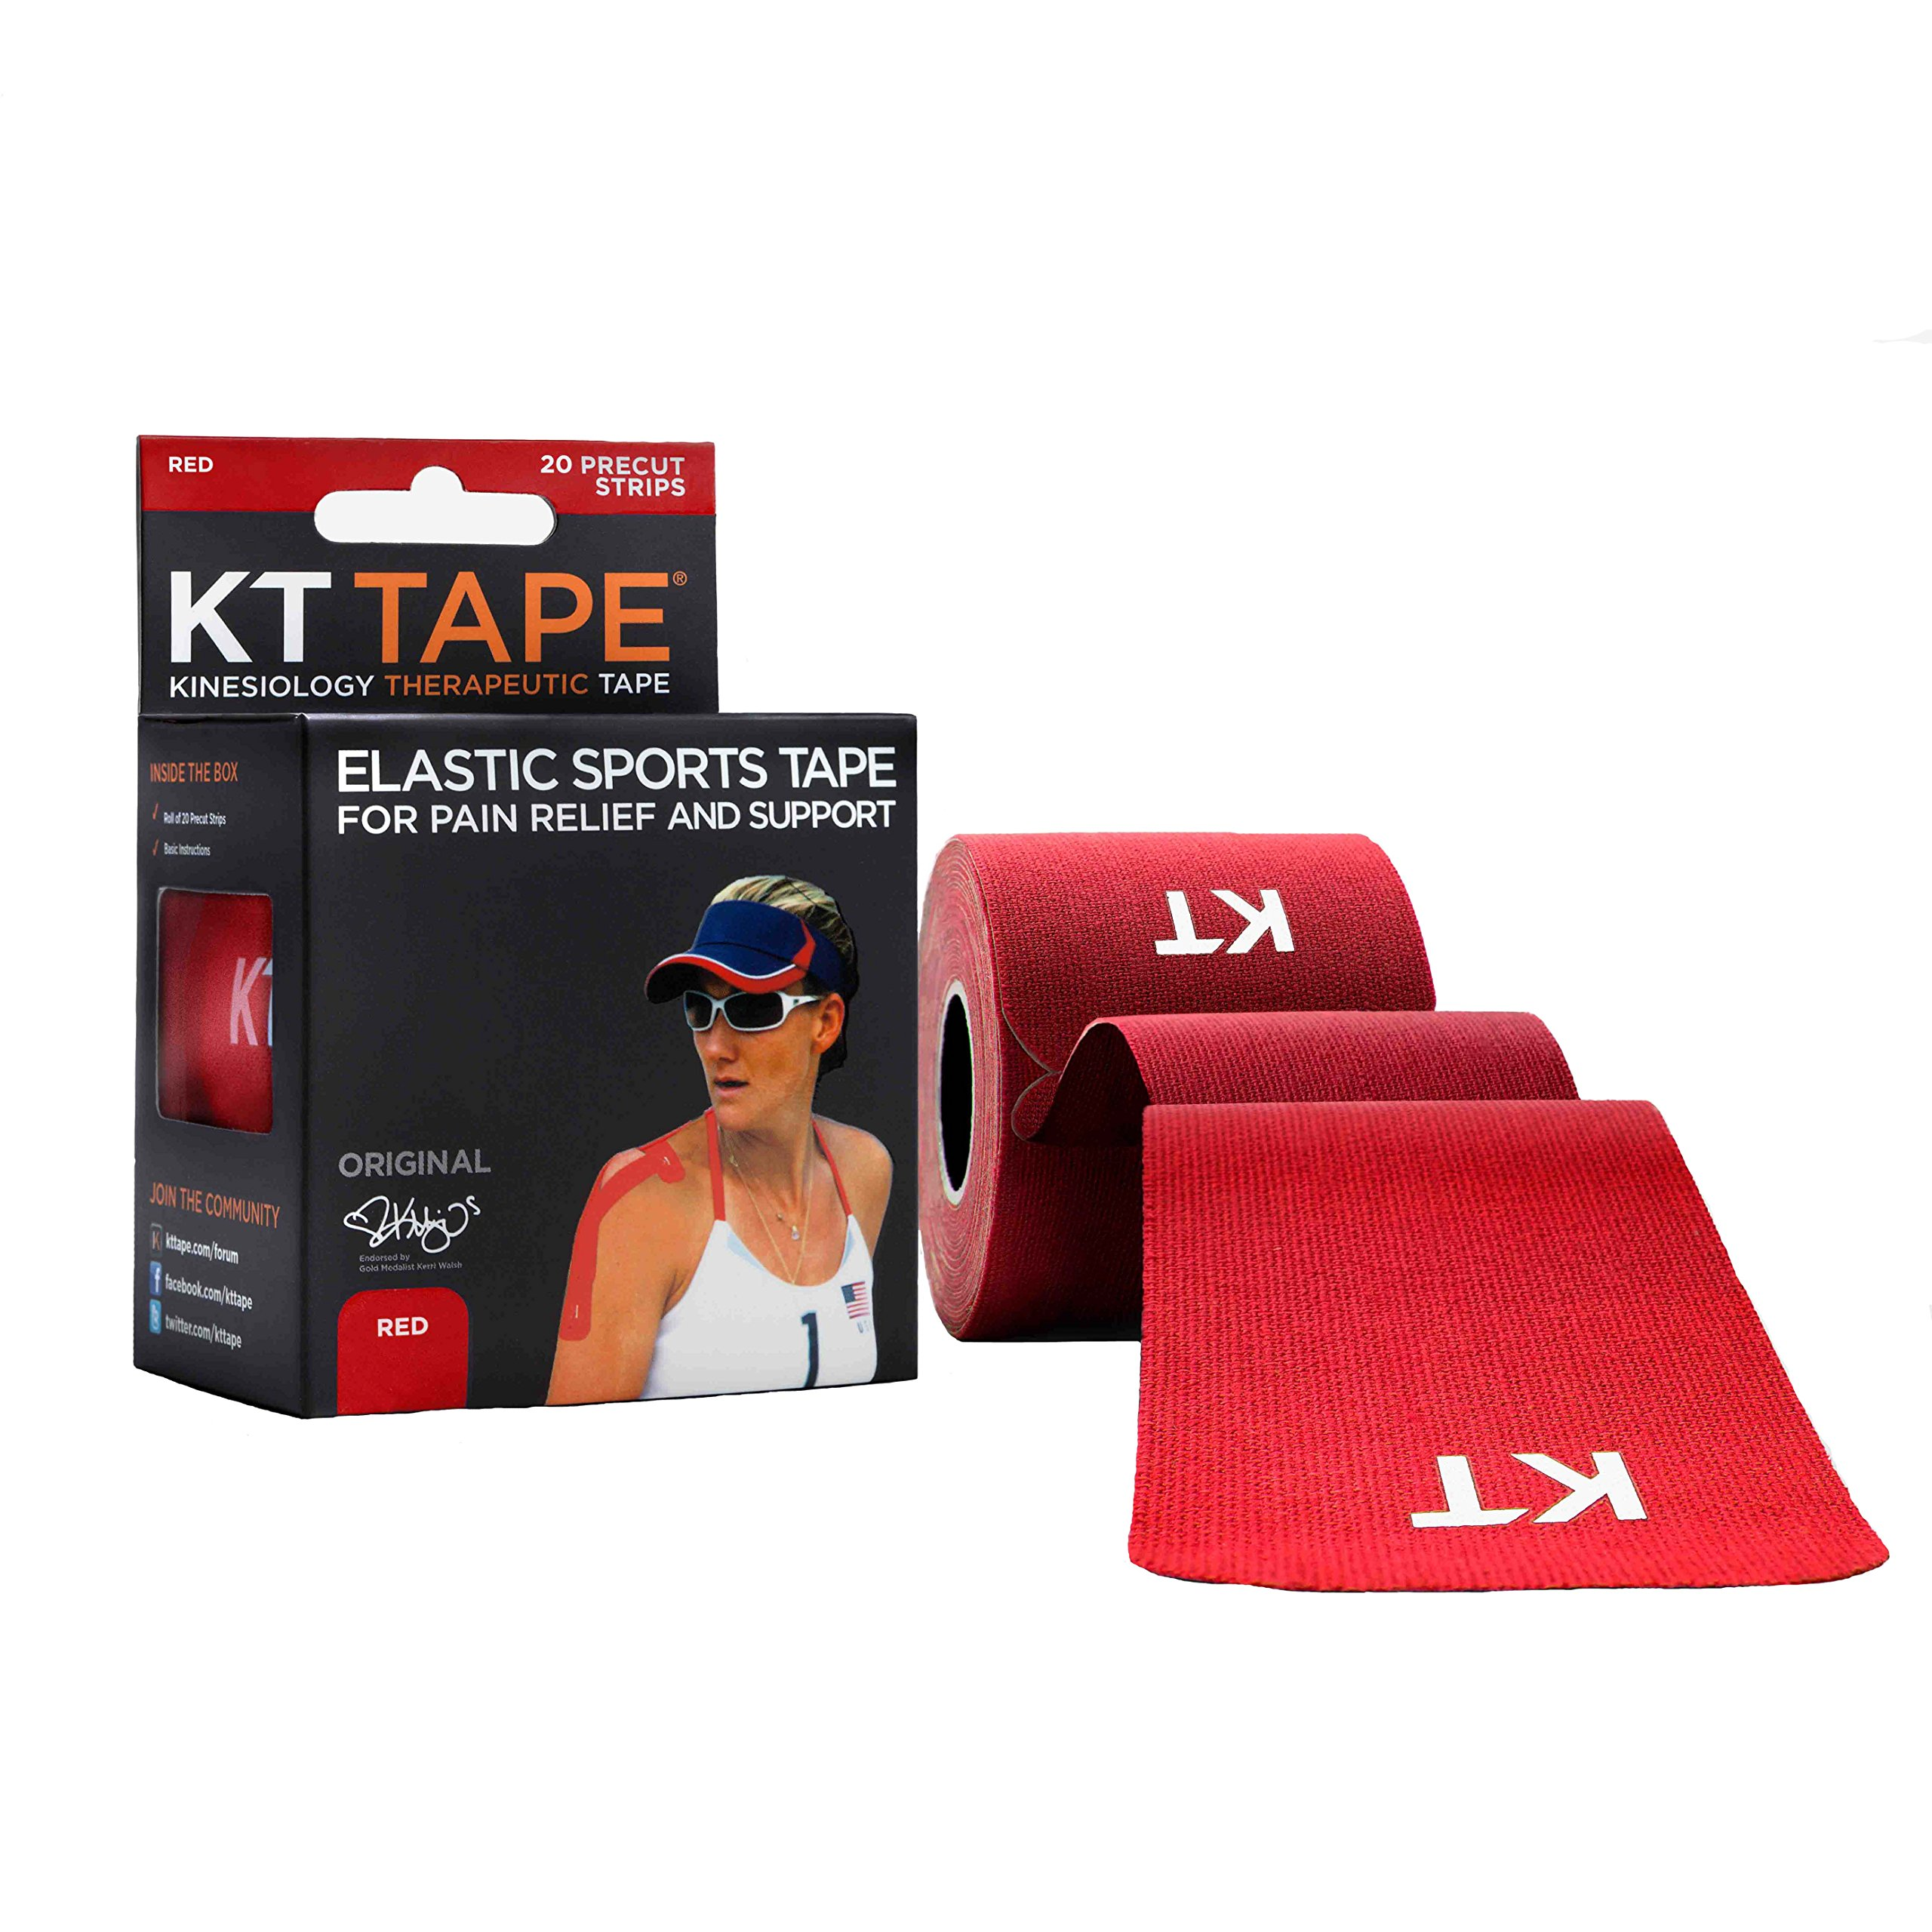 KT Tape Original Cotton Elastic Kinesiology Therapeutic Sports Tape, 20 Pre cut 10 inch Strips, Red